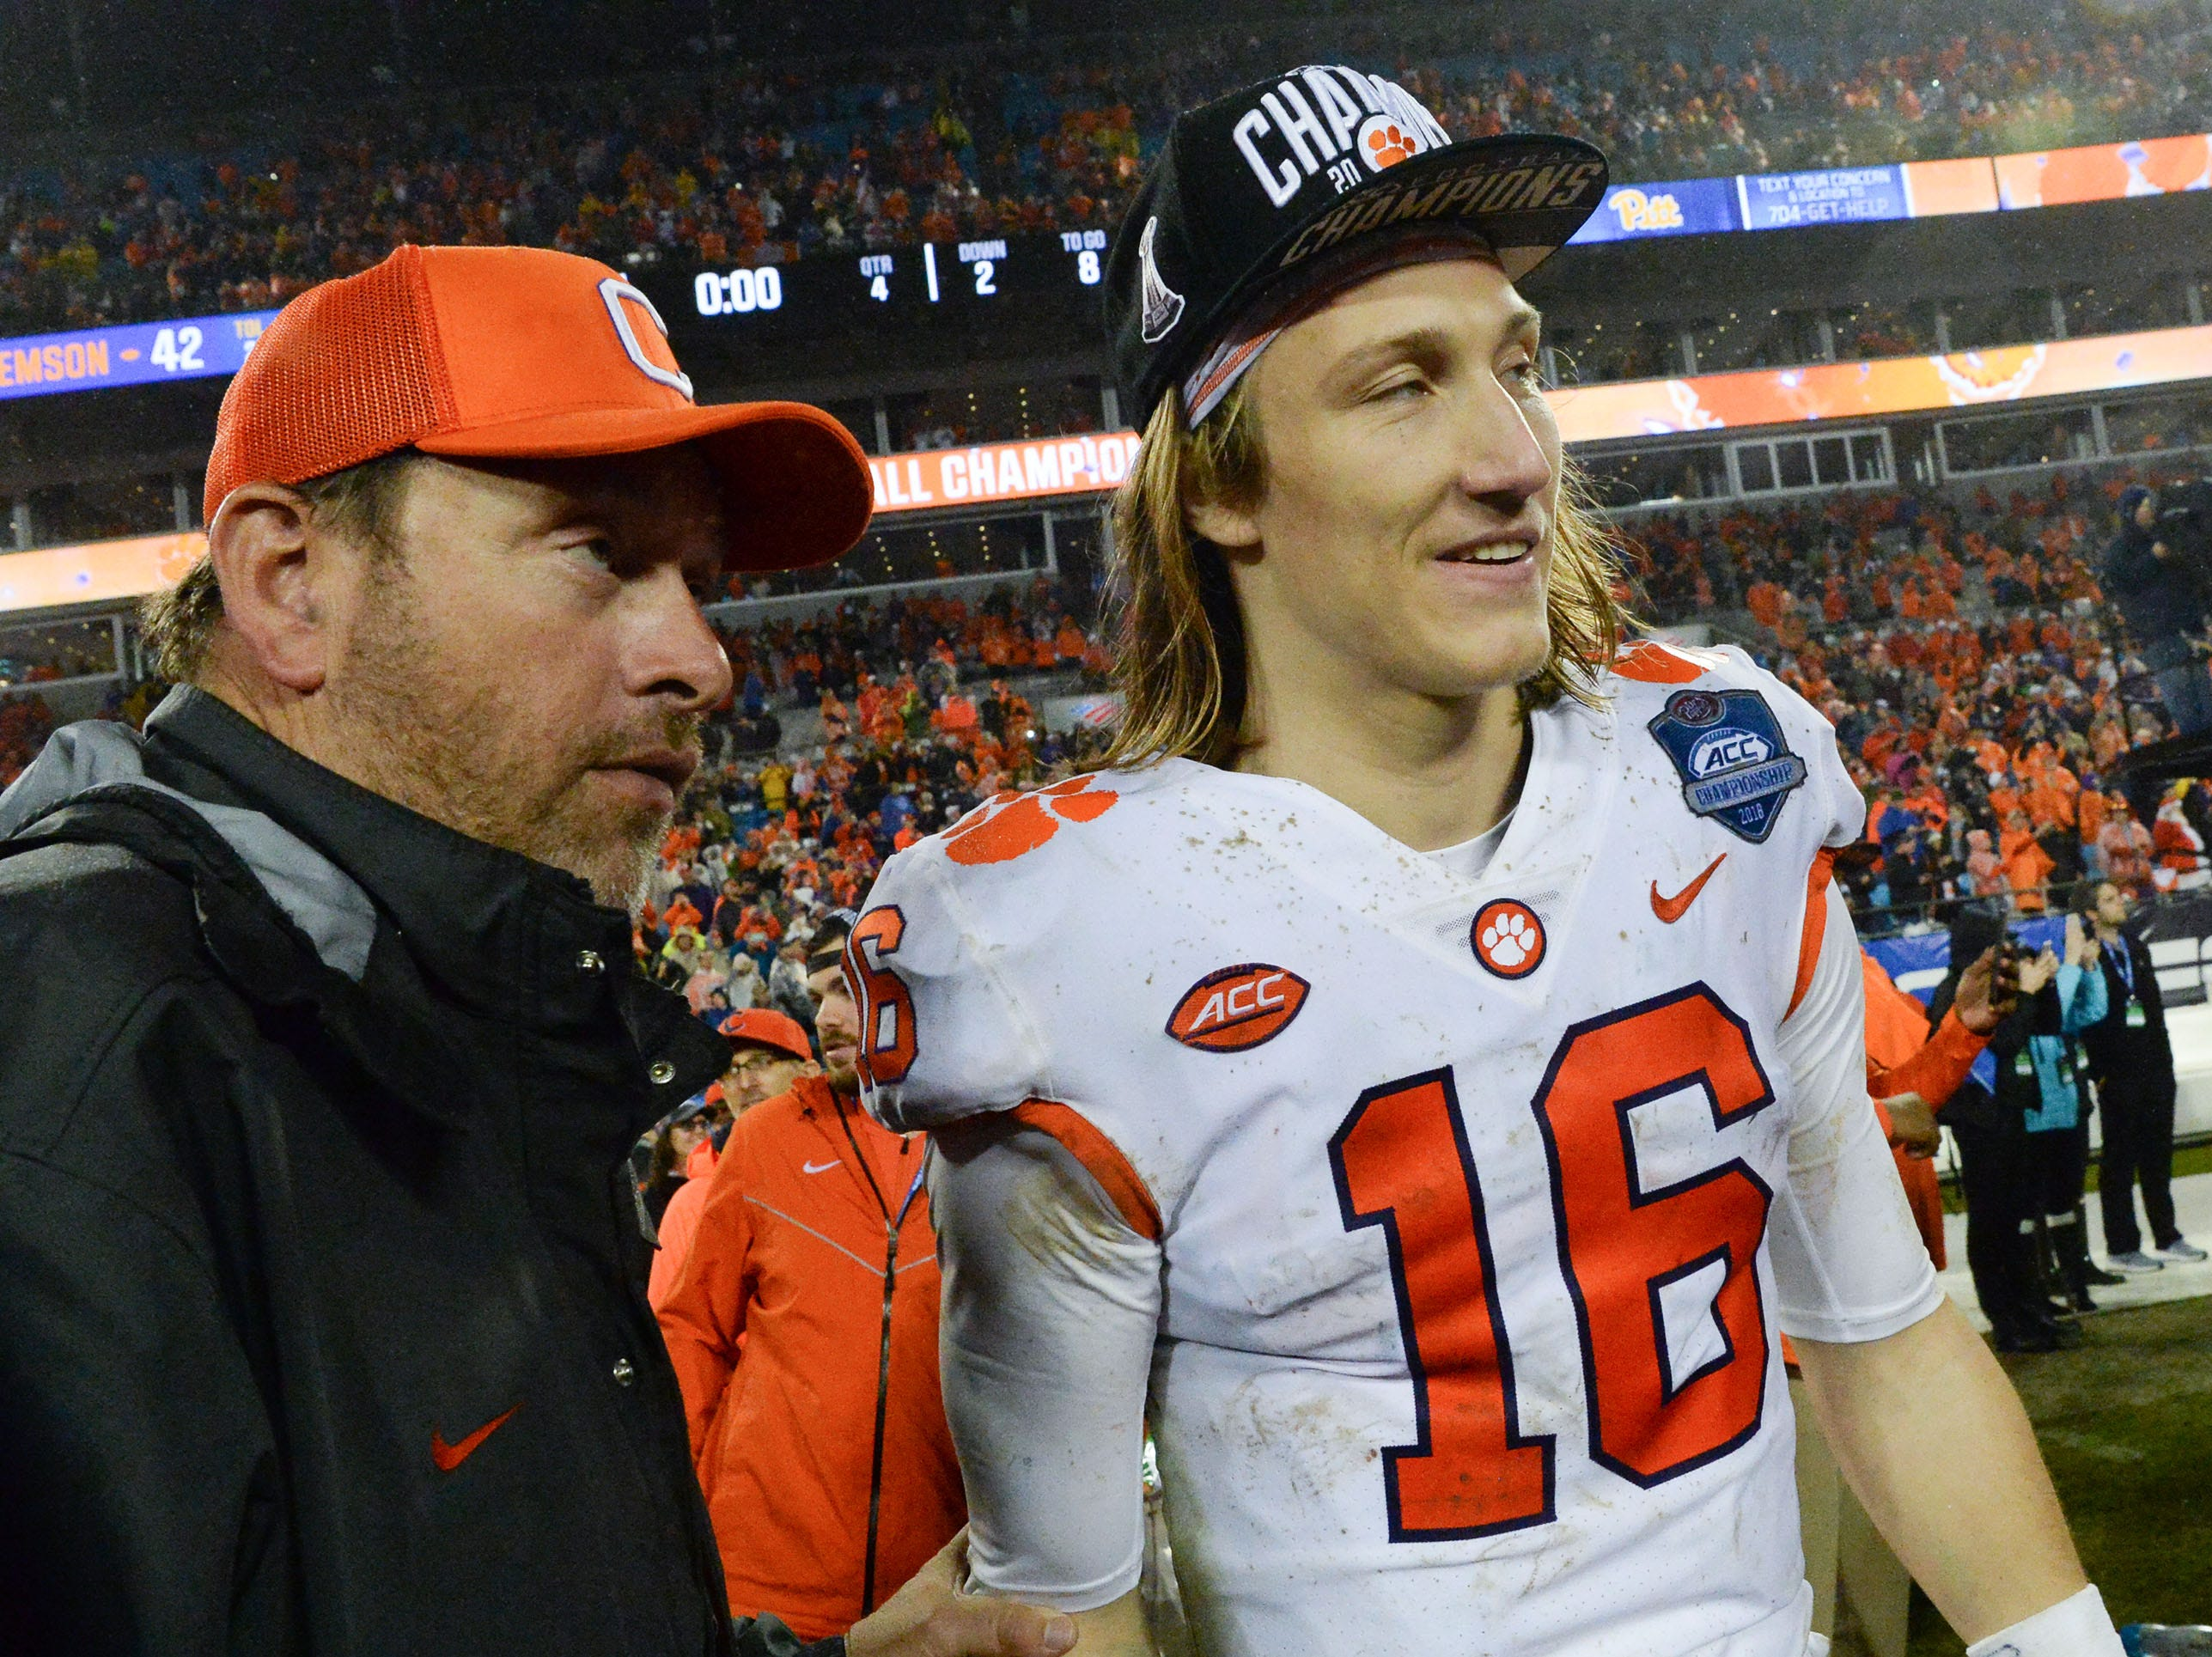 Former Clemson quarterback Rodney Williams, left, and quarterback Trevor Lawrence (16) after the game at the Dr. Pepper ACC football championship at Bank of America Stadium in Charlotte, N.C. on Saturday, December 1, 2018.